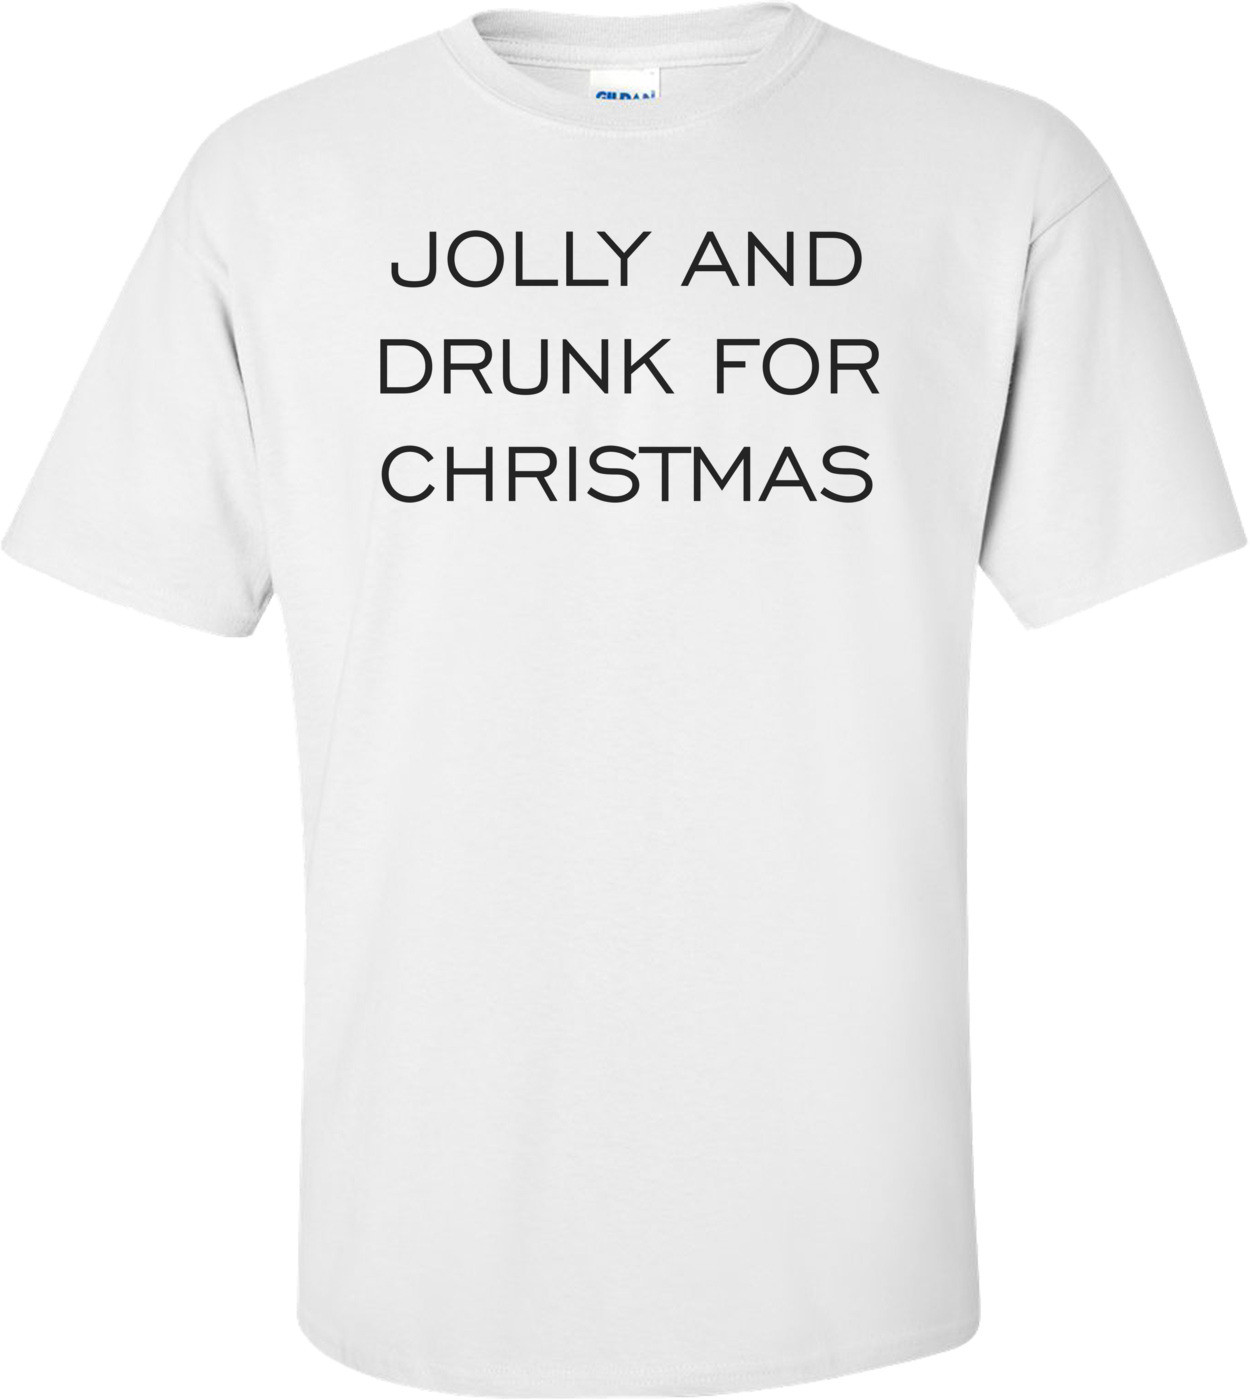 JOLLY AND DRUNK FOR CHRISTMAS Shirt